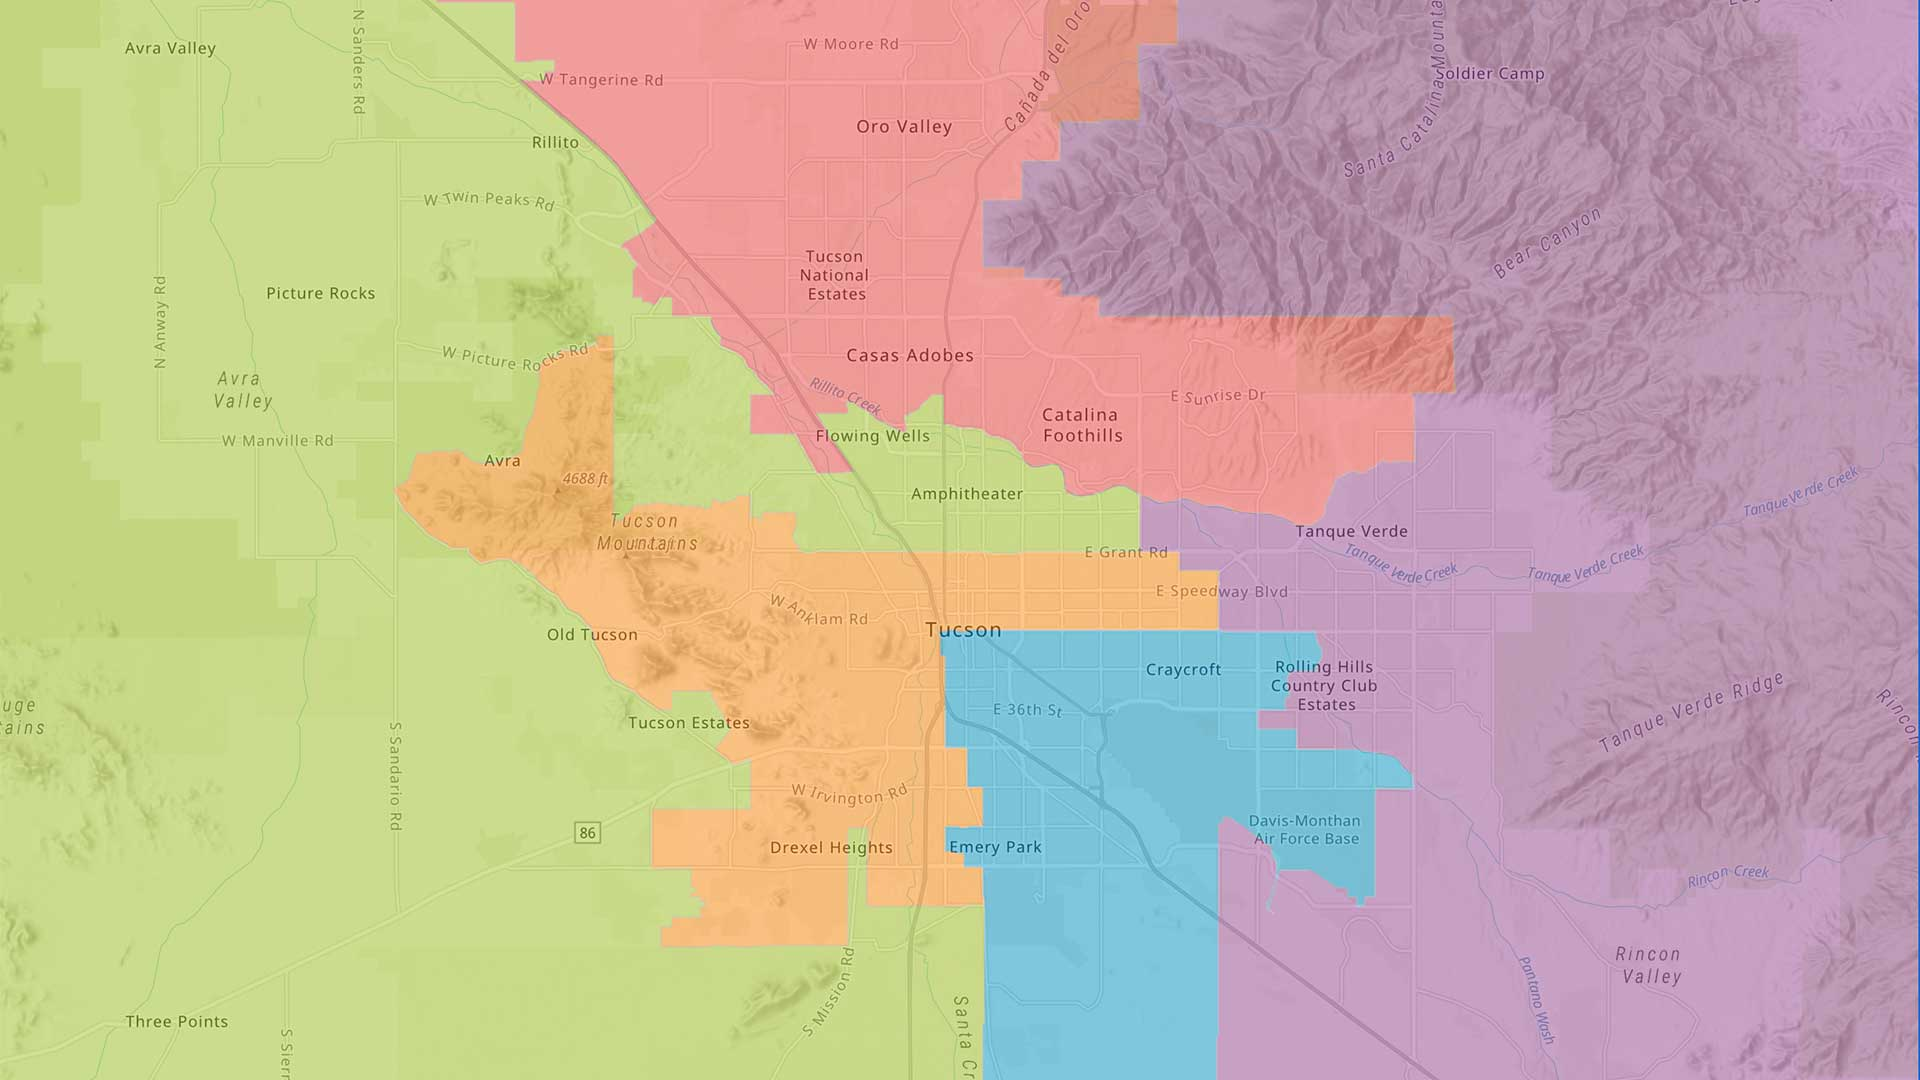 Image of a map depicting Pima County Board of Supervisors districts, October 2020.